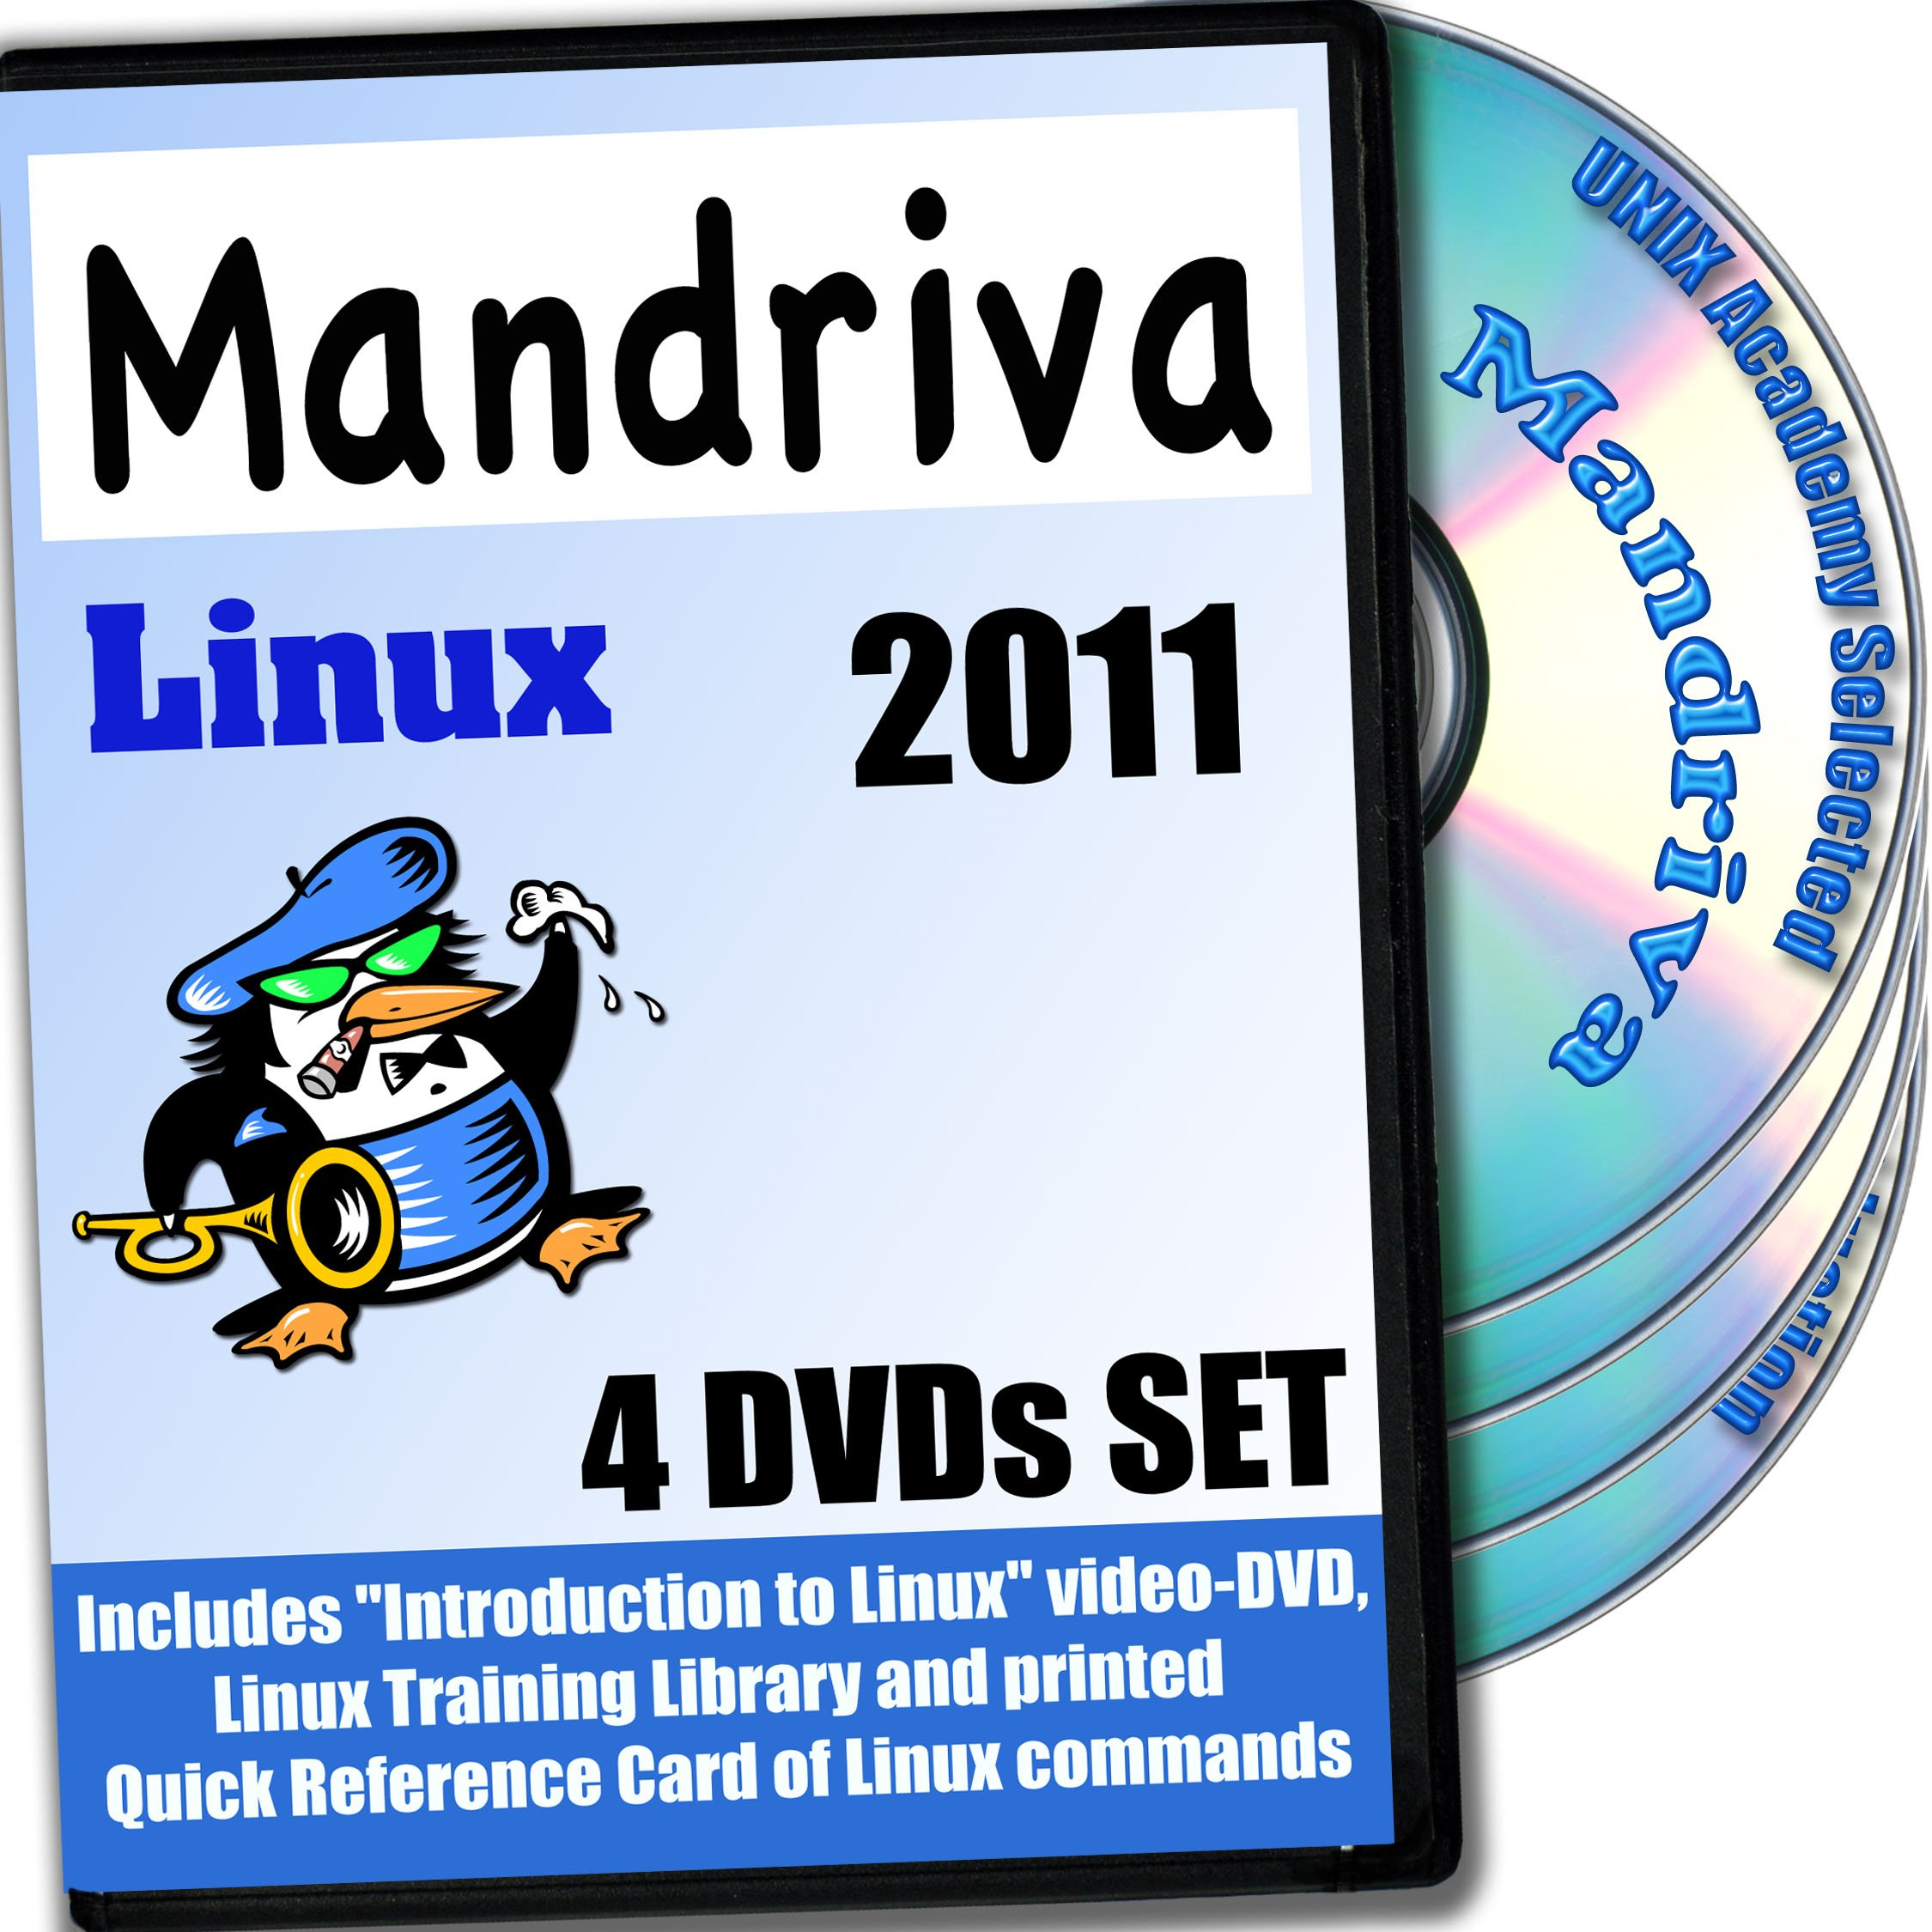 Mandriva 2011 Linux, 4-discs DVD Installation and Reference Set Ed.2013 by SetLinux by PRIZIX